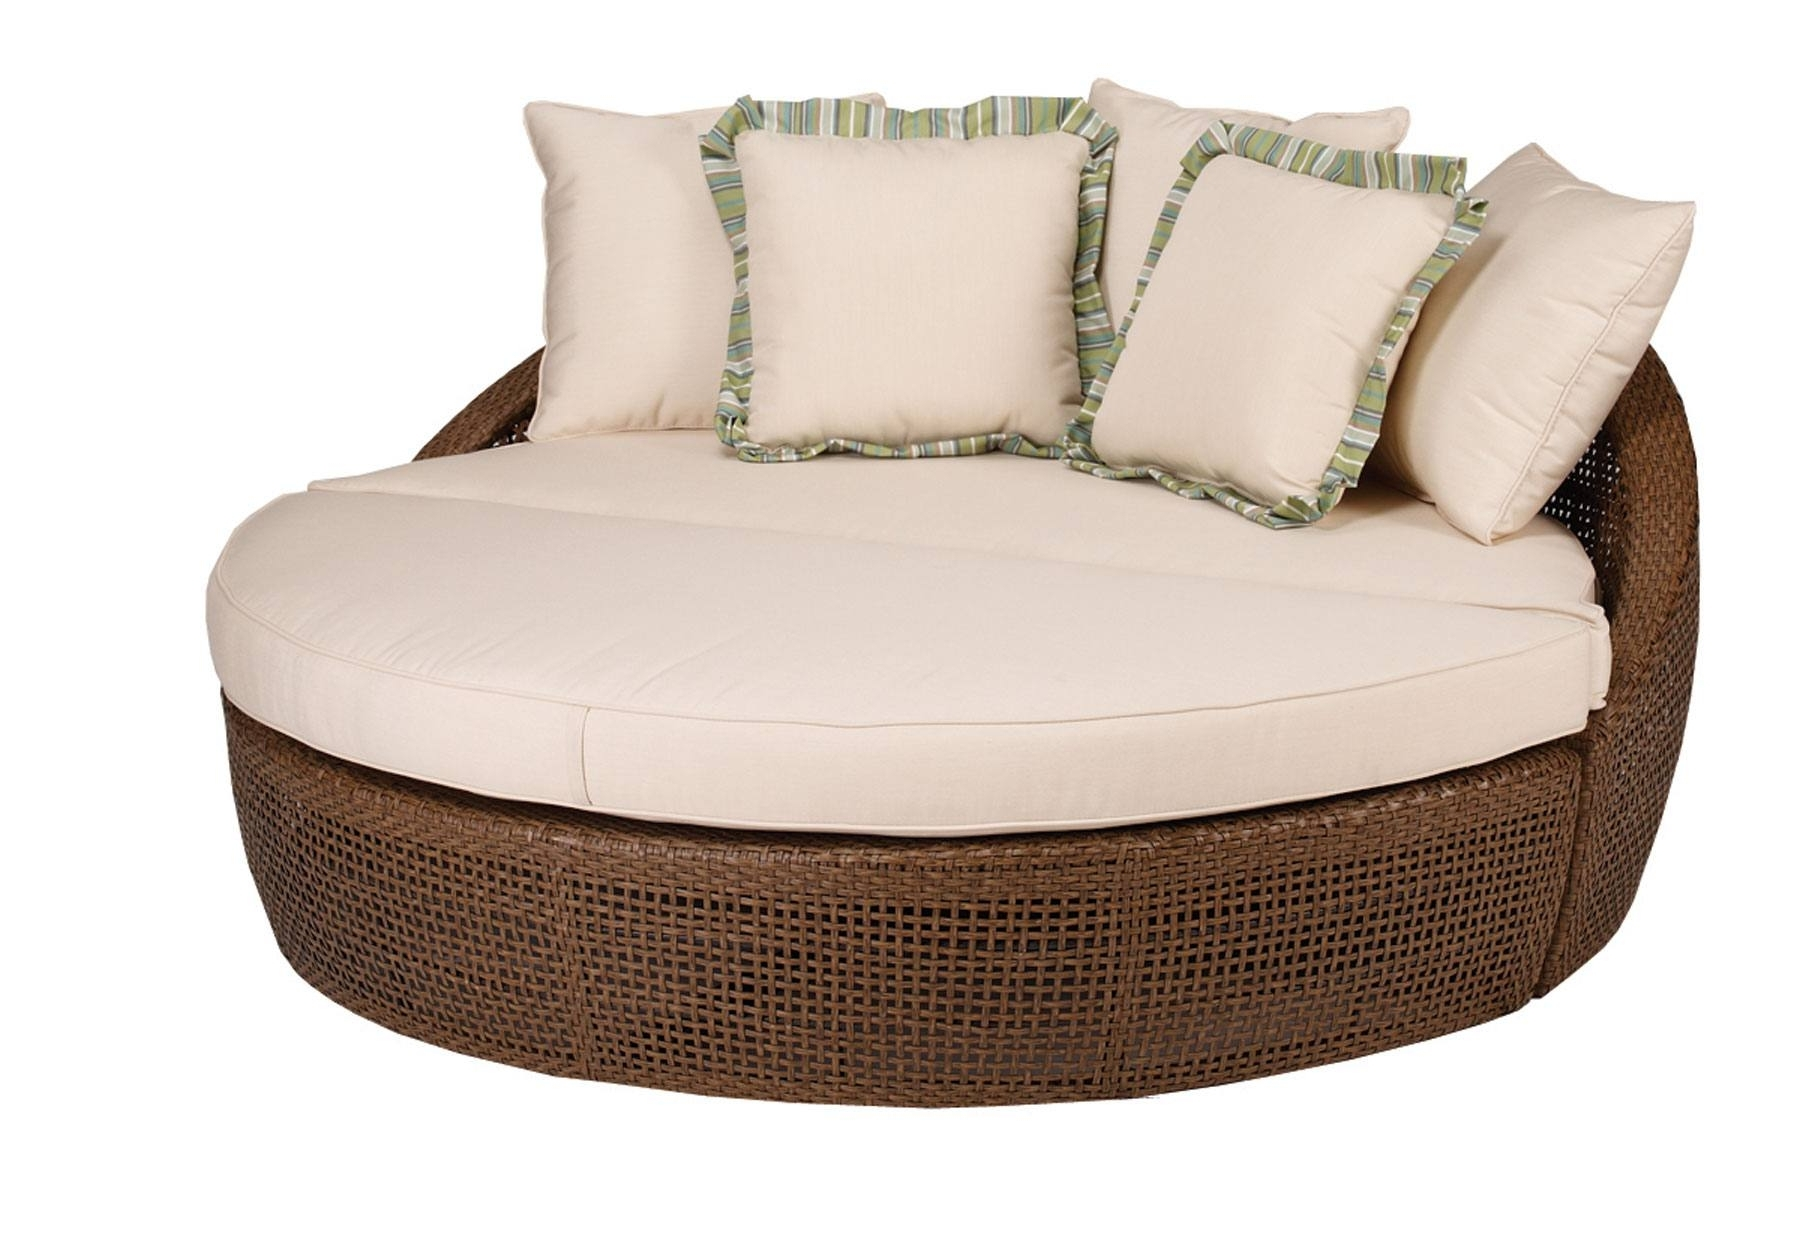 Round Chaises With Regard To Recent Outstanding Round Chaise Lounge Designs – Decofurnish (View 13 of 15)